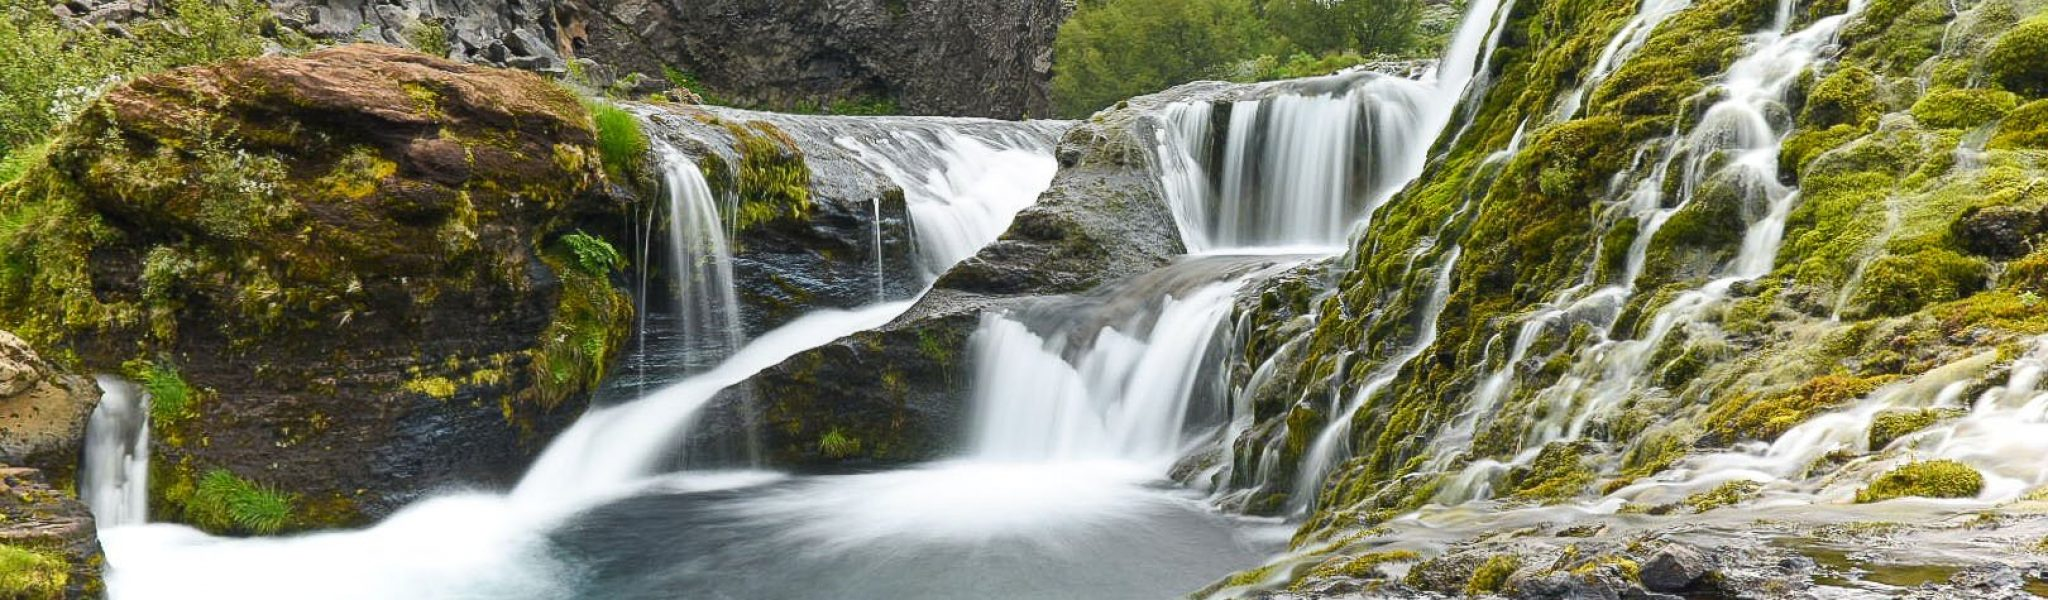 waterfall-over-rocky-shores